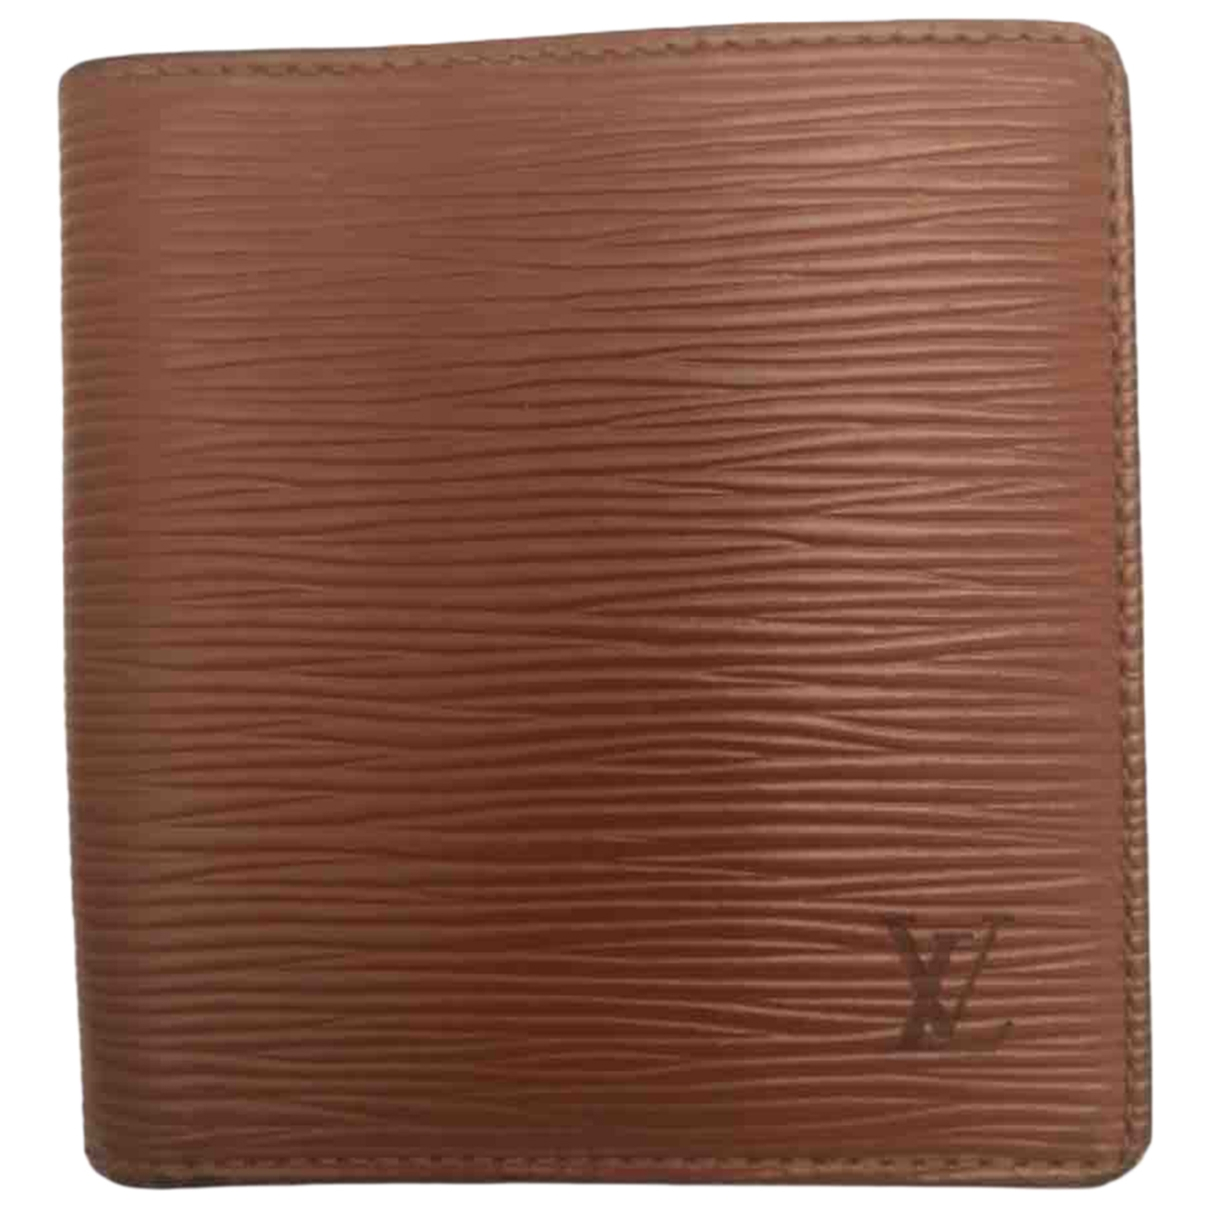 Louis Vuitton \N Brown Leather Purses, wallet & cases for Women \N